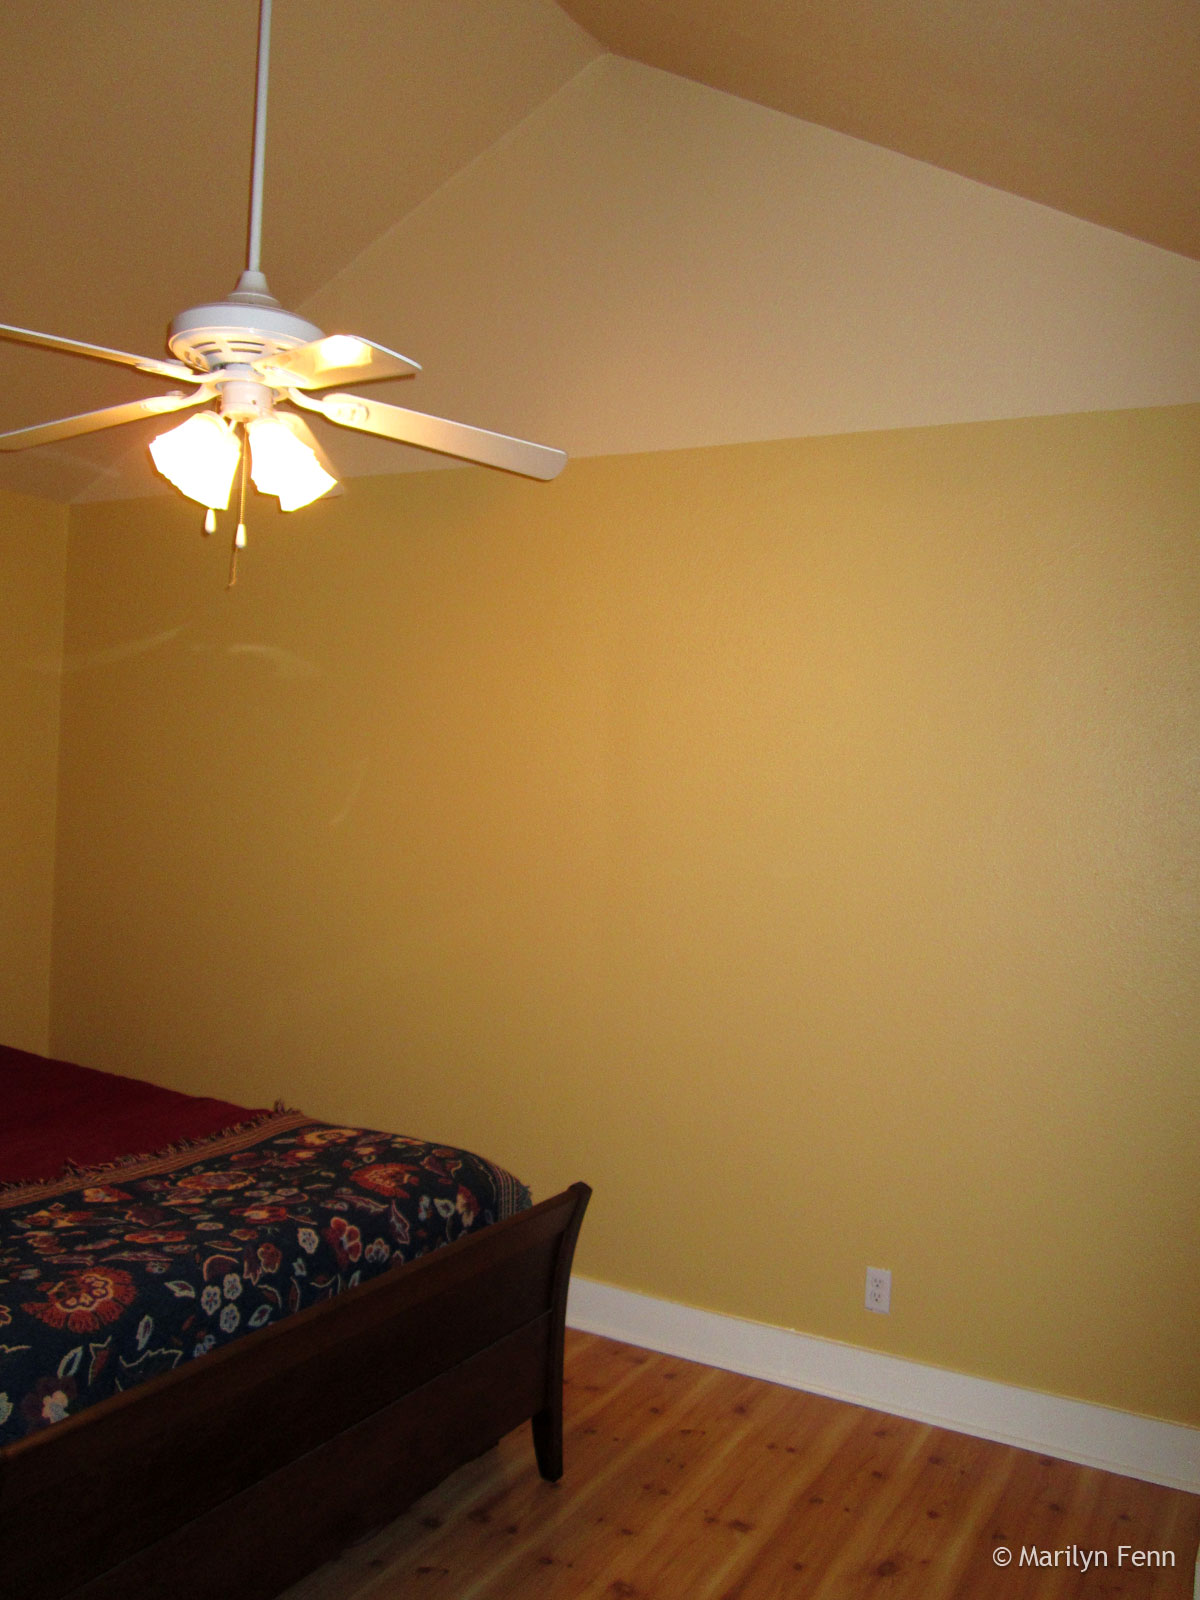 Finished painting the bedroom marilyn fenn decor well be putting up crown molding complete with rope lights where one color meets the other mozeypictures Gallery